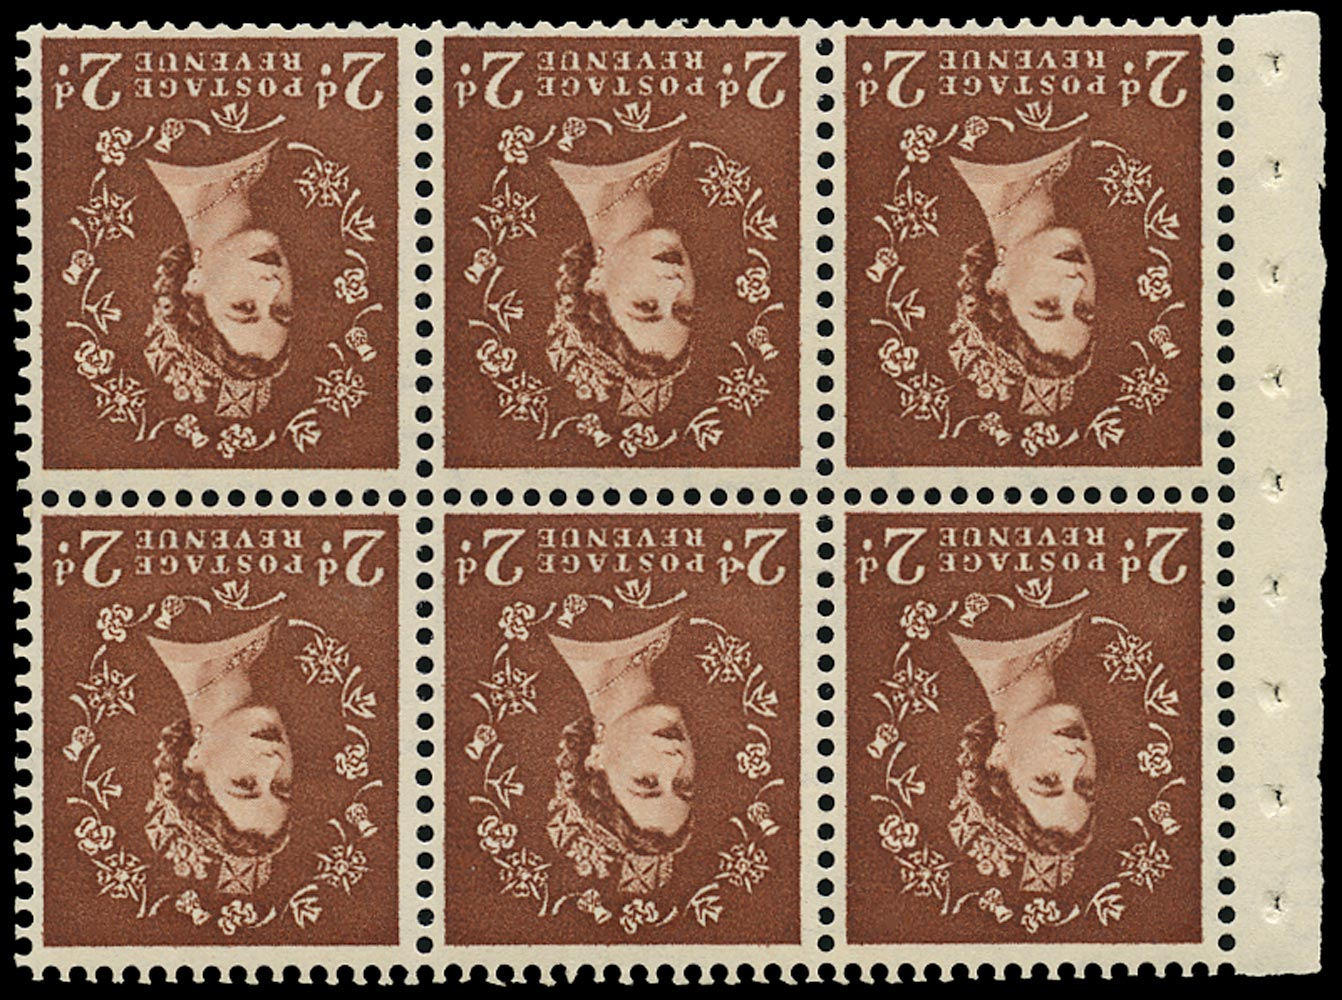 GB 1956  SG543blWi Booklet pane - 'Spot after 2' variety